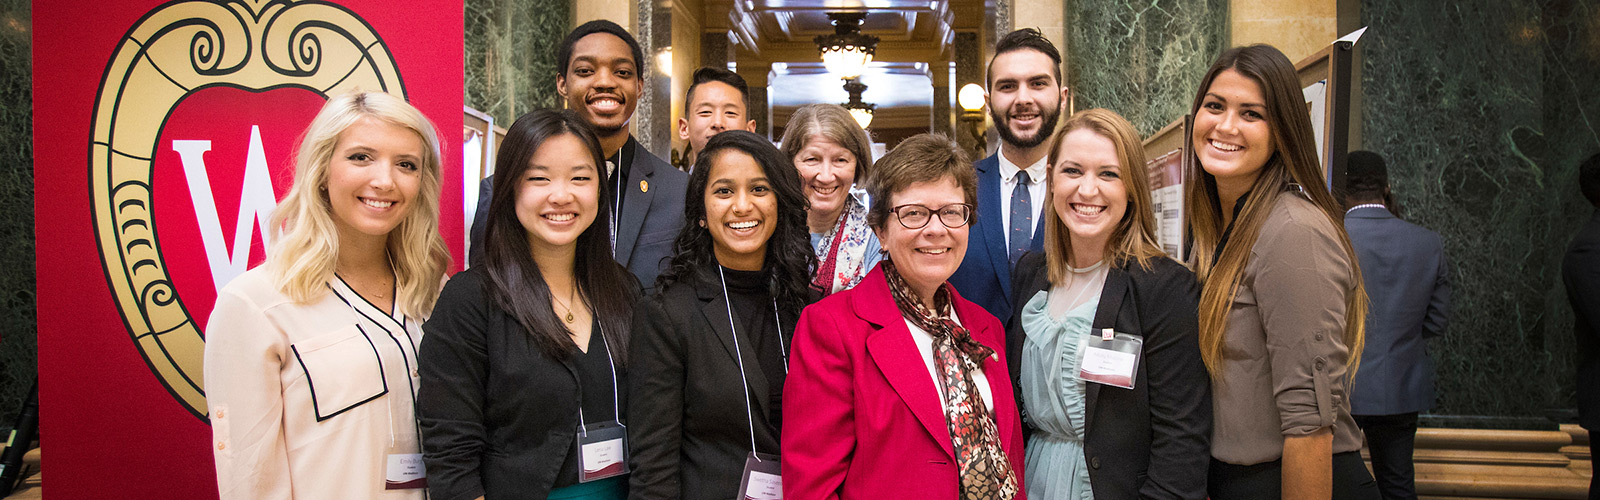 UW–Madison students and Chancellor Rebecca Blank at the 14th Annual Research in the Rotunda event.